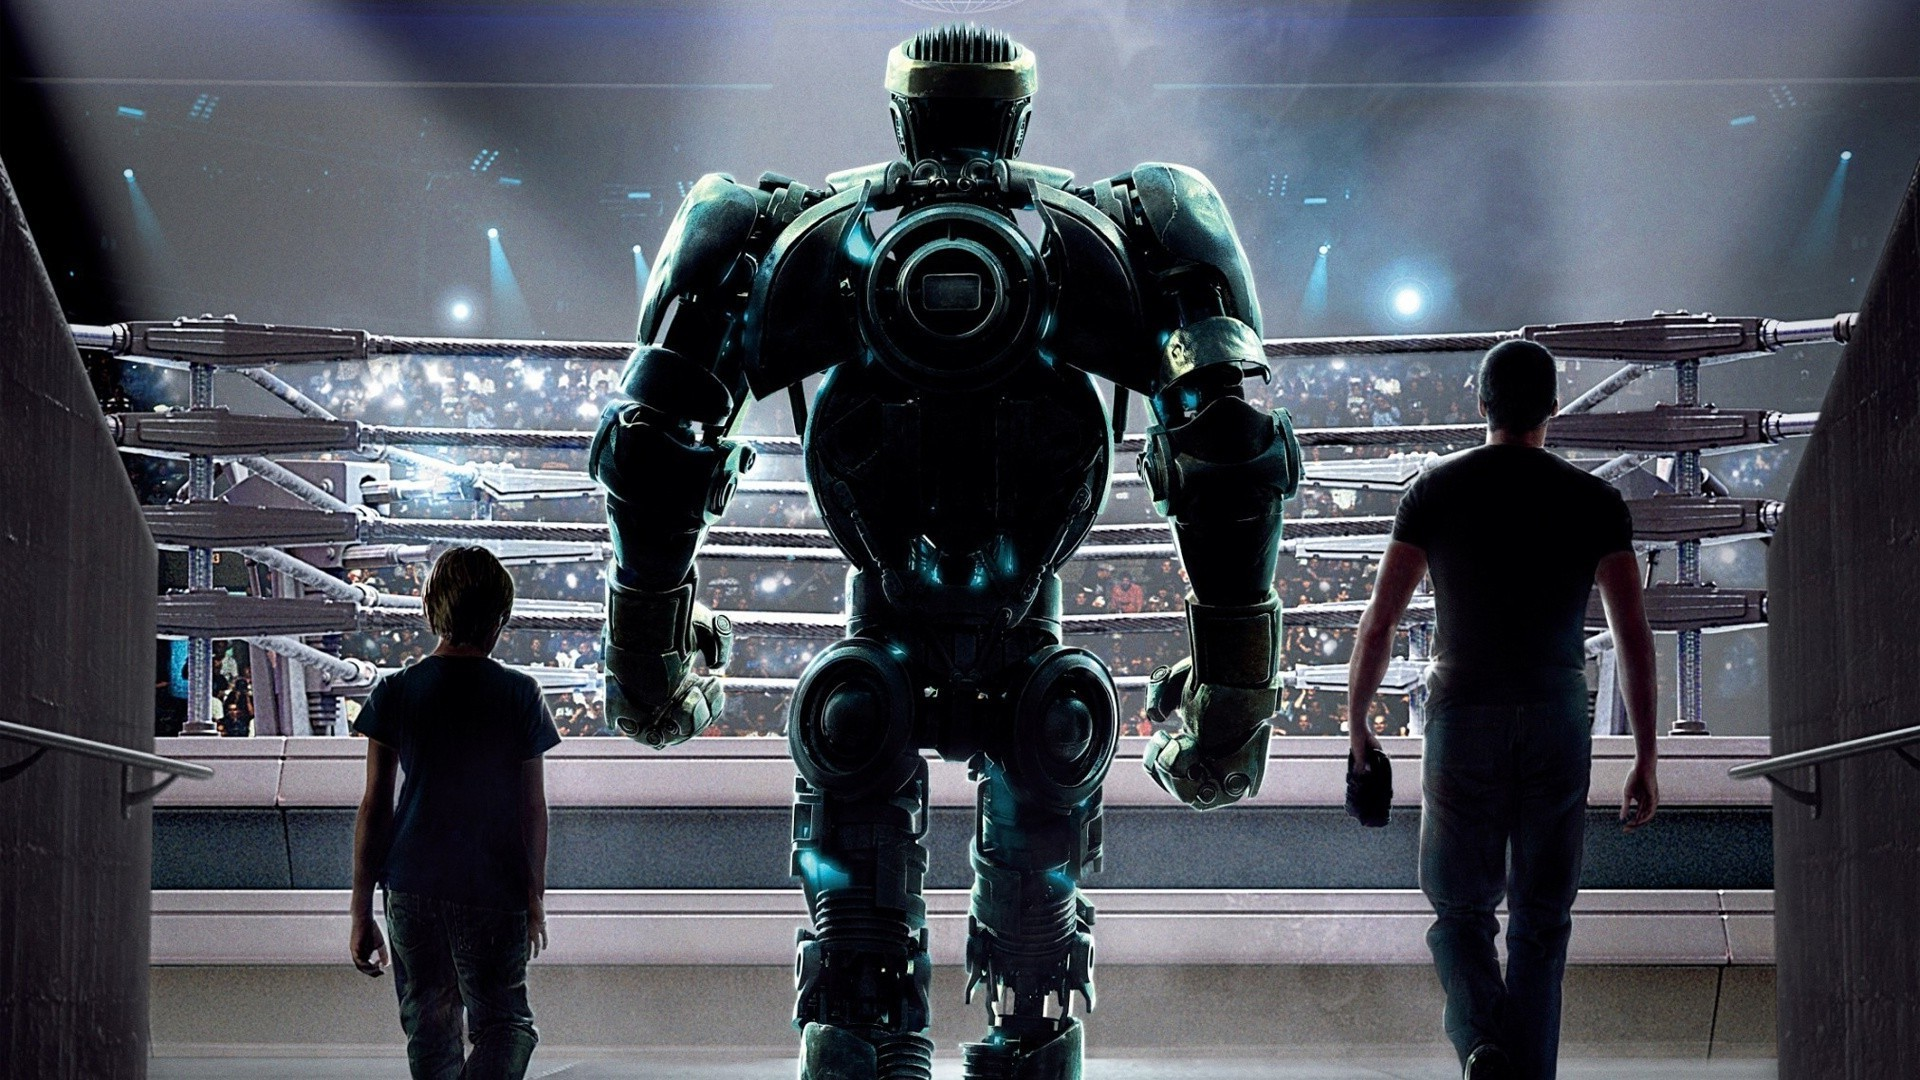 Full Hd 1080p Wallpapers Cars Movies Real Steel Wallpapers Hd Desktop And Mobile